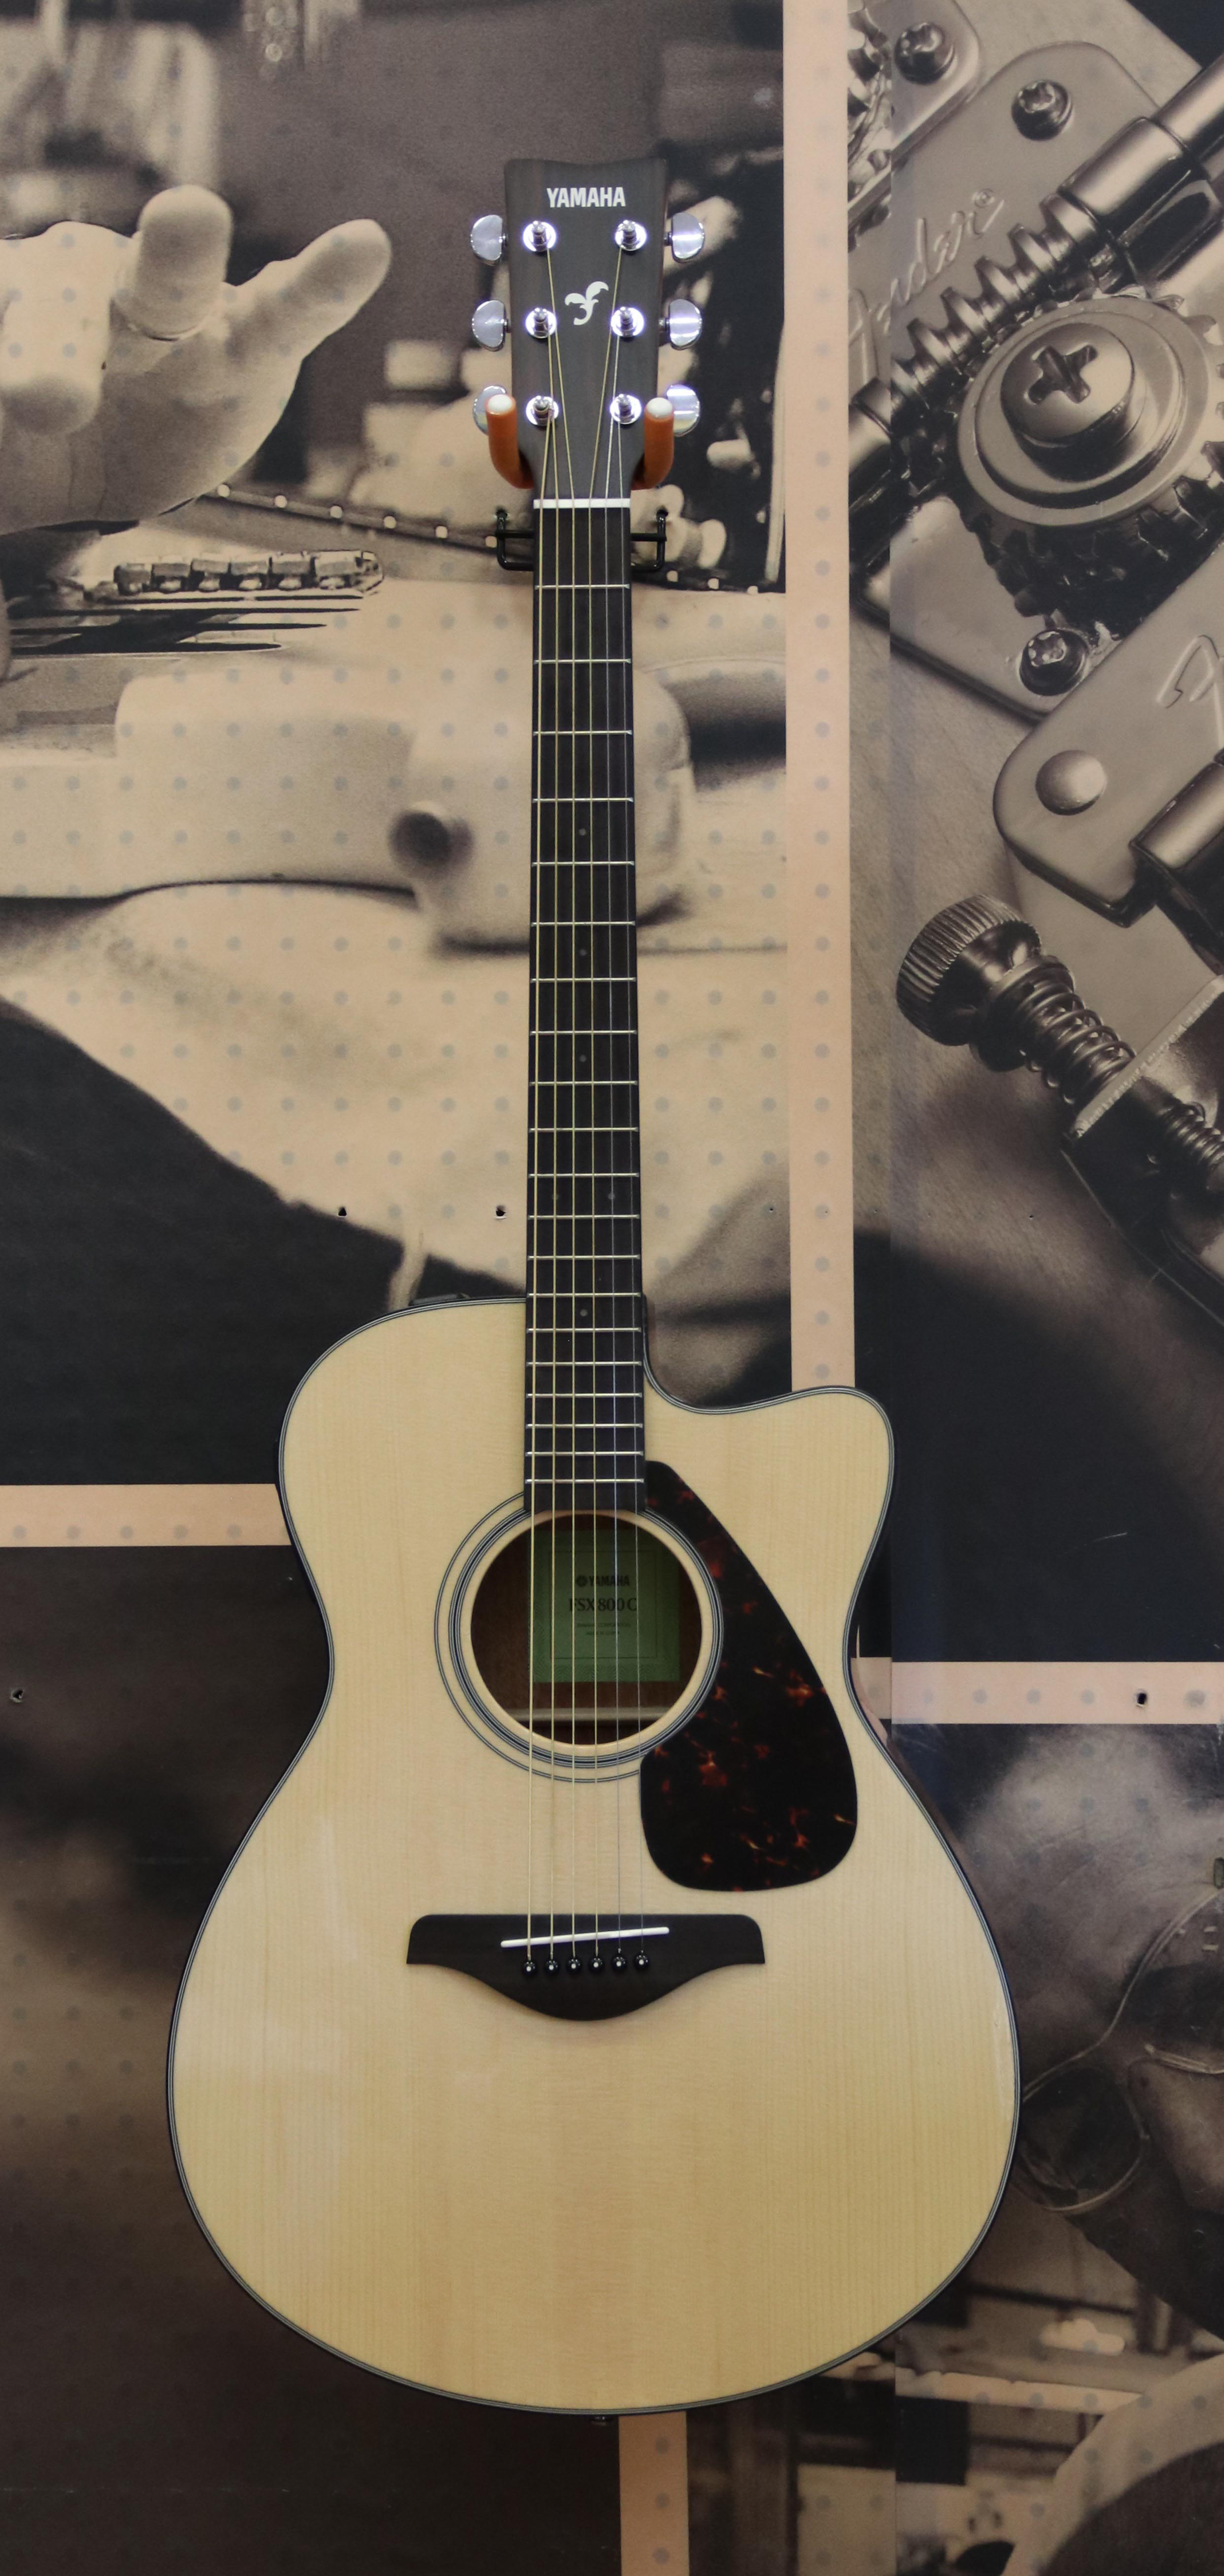 yamaha fsx800c solid top small body acoustic electric guitar natural ebay. Black Bedroom Furniture Sets. Home Design Ideas